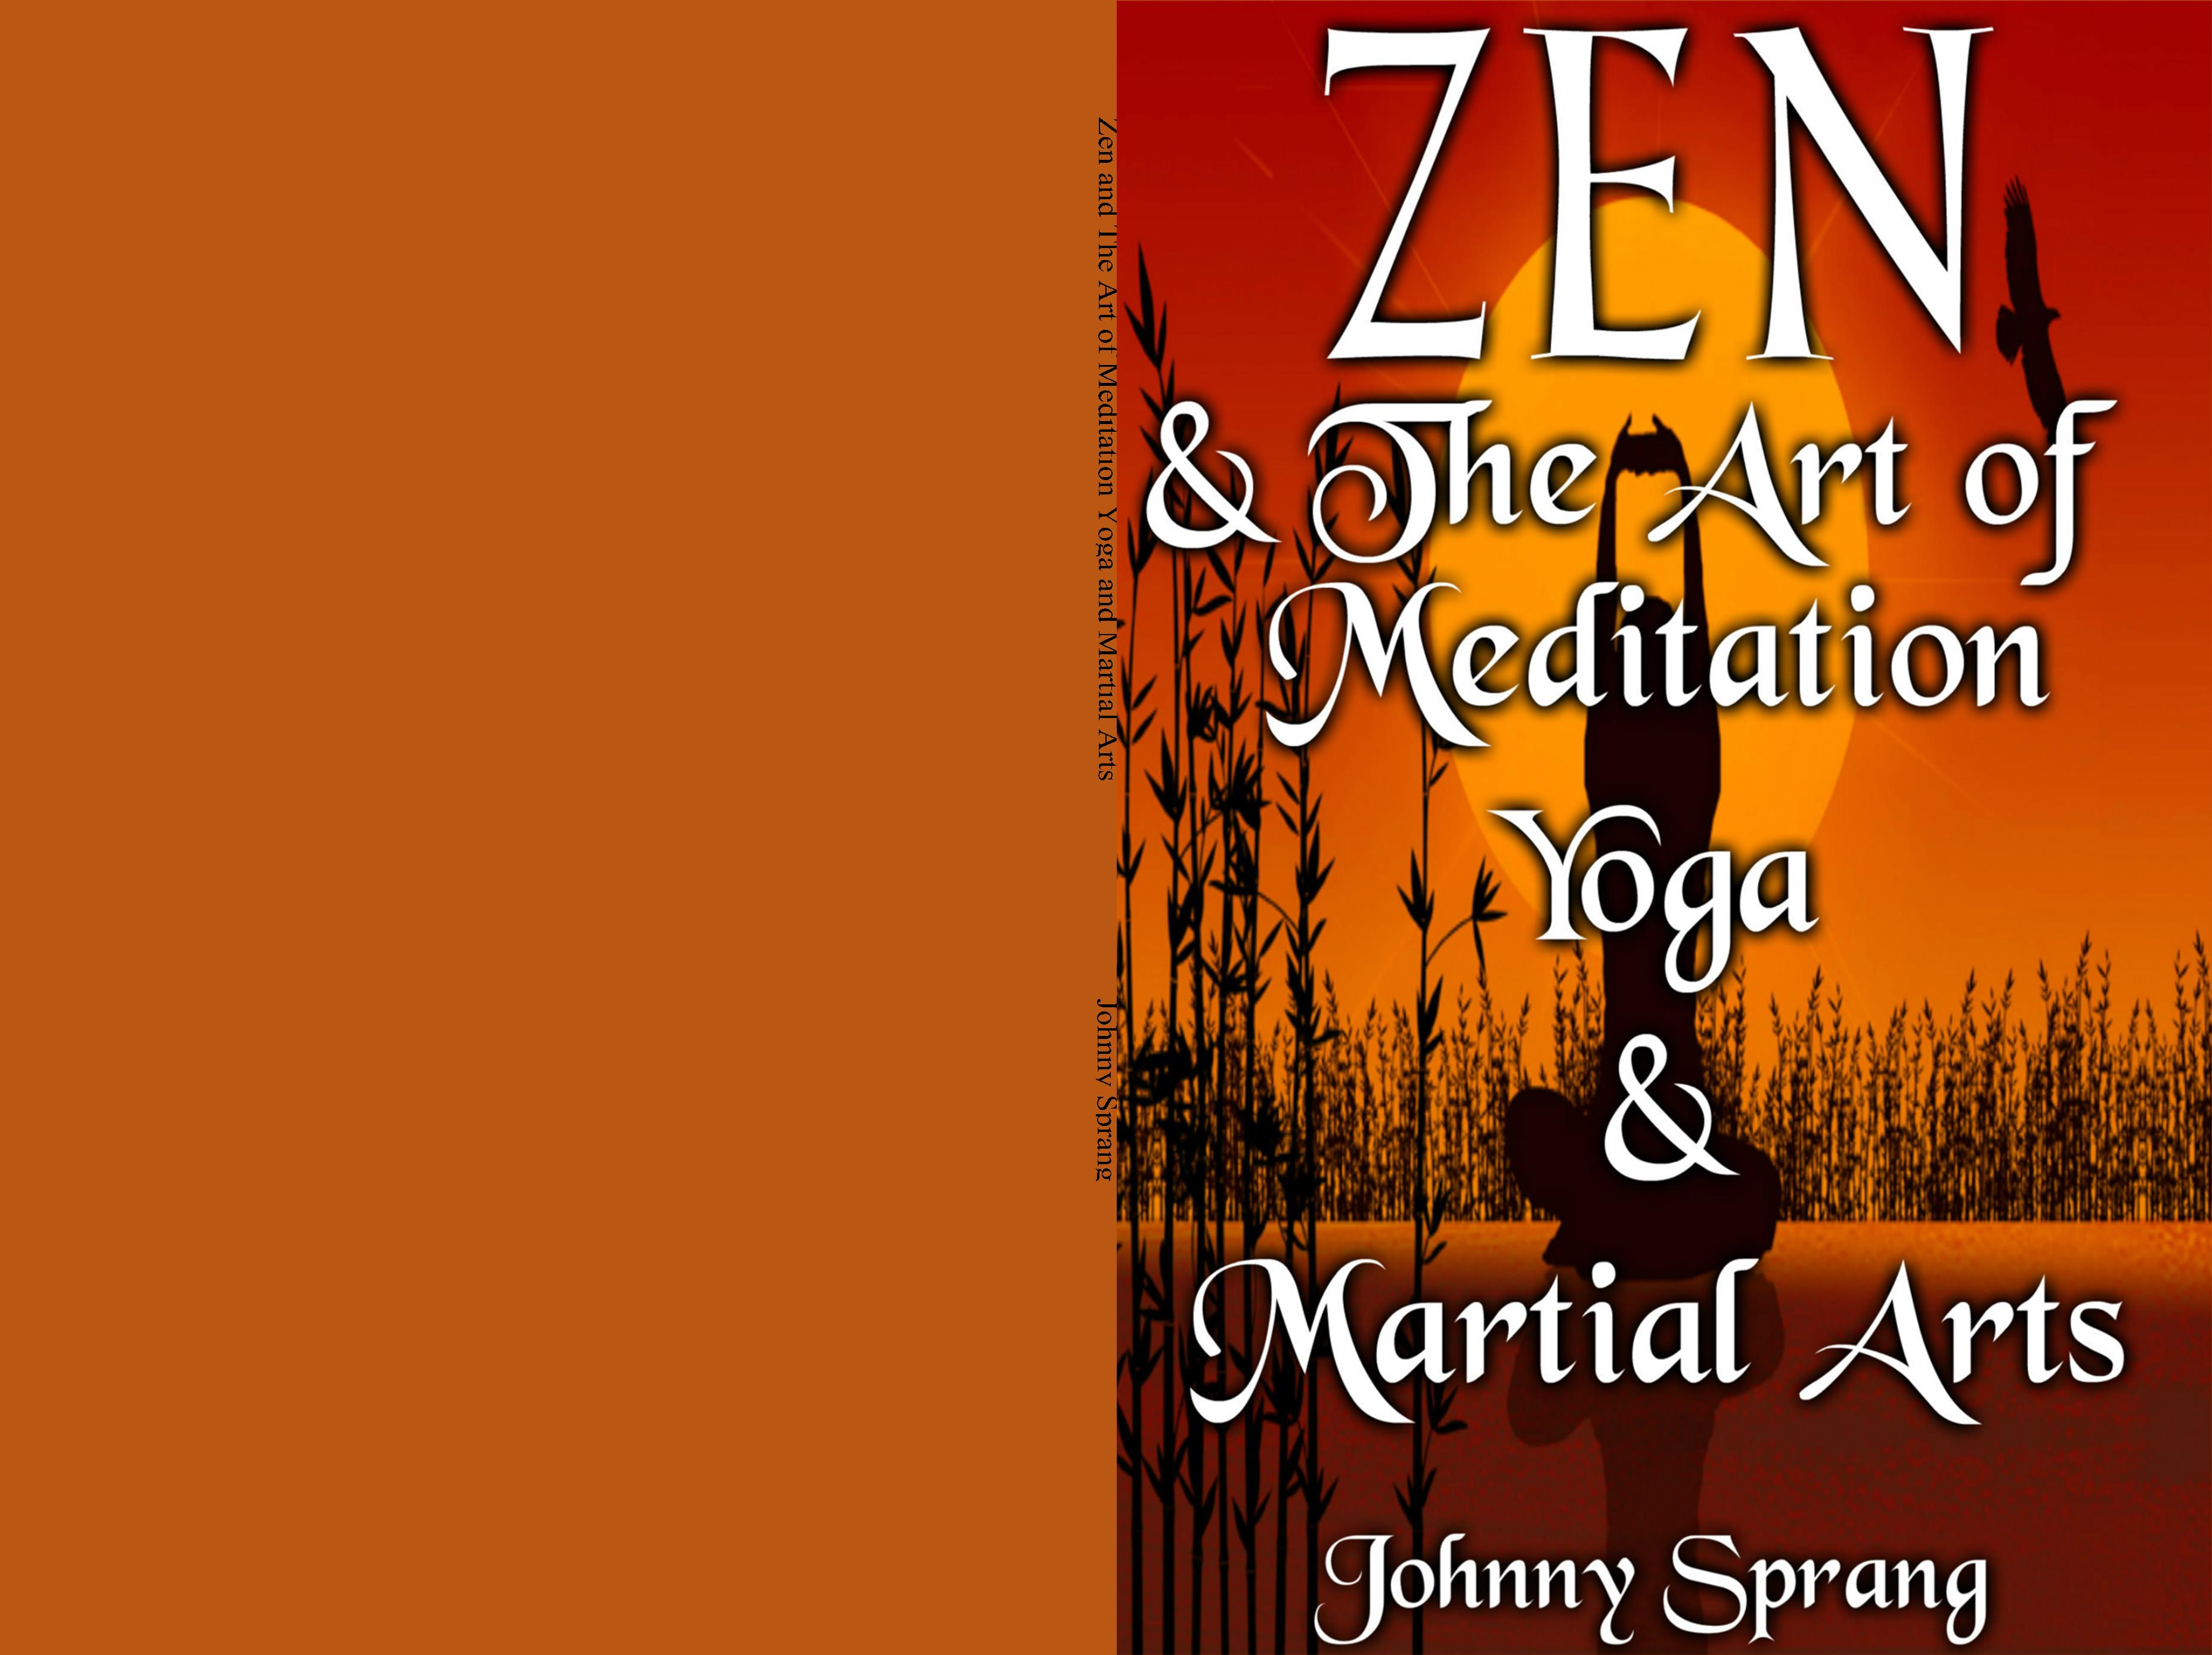 Zen and The Art of Meditation Yoga and Martial Arts cover image